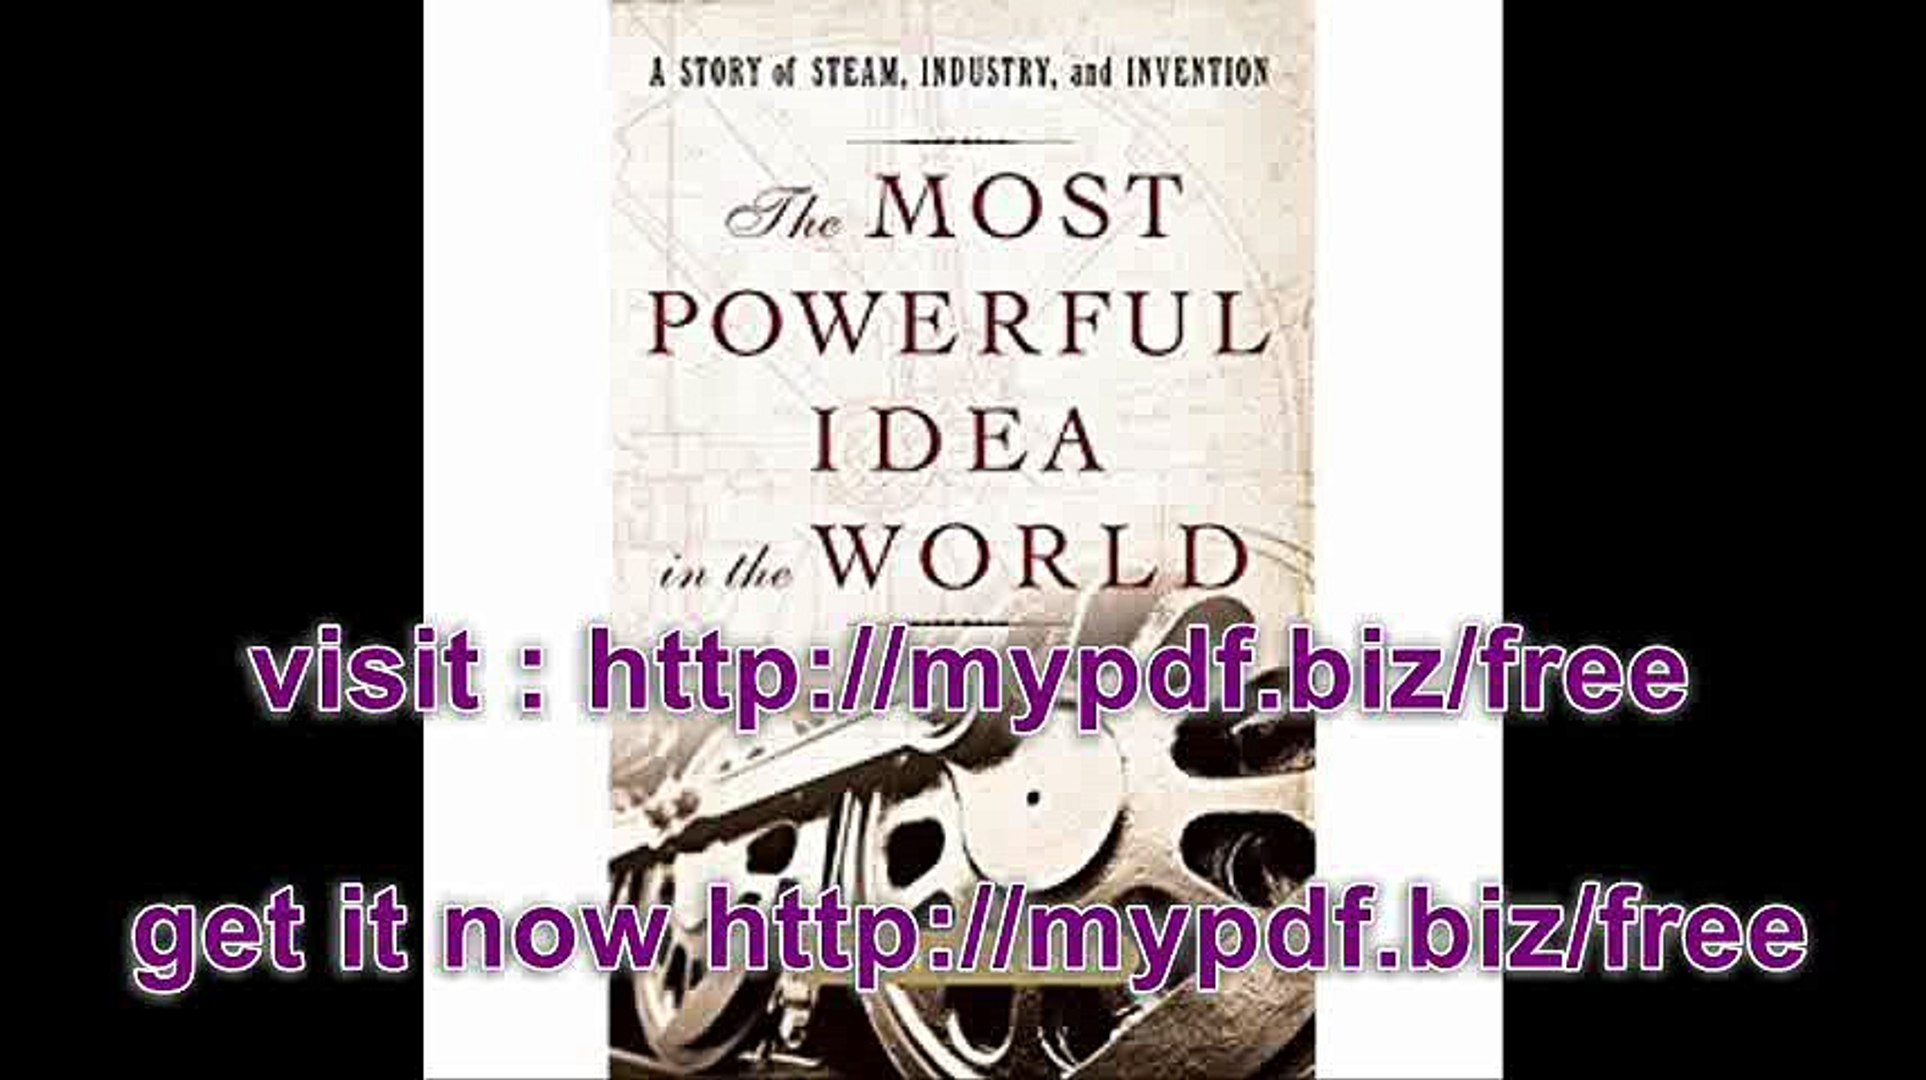 The Most Powerful Idea in the World A Story of Steam, Industry, and Invention�� [MOST POWERFUL I